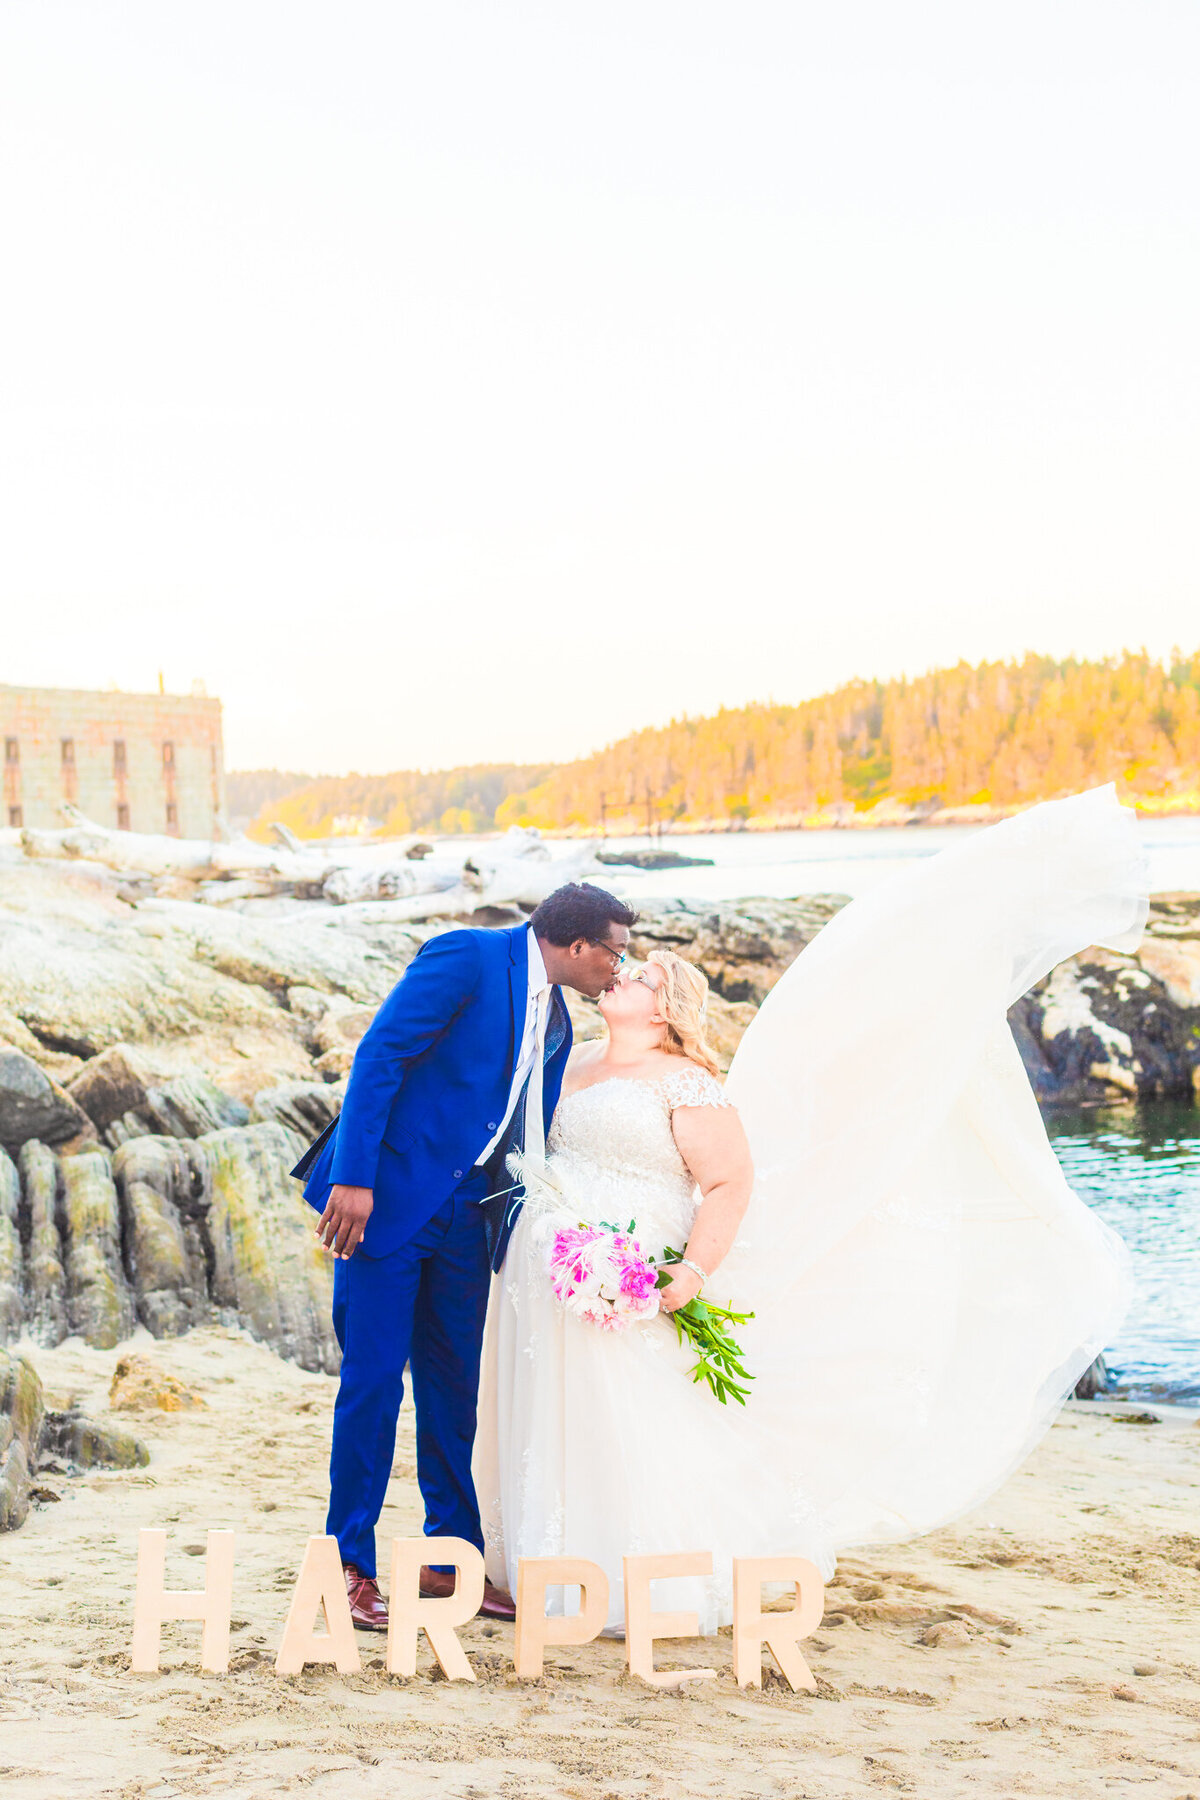 rainbowweddingmaineweddingphotographer-1-25